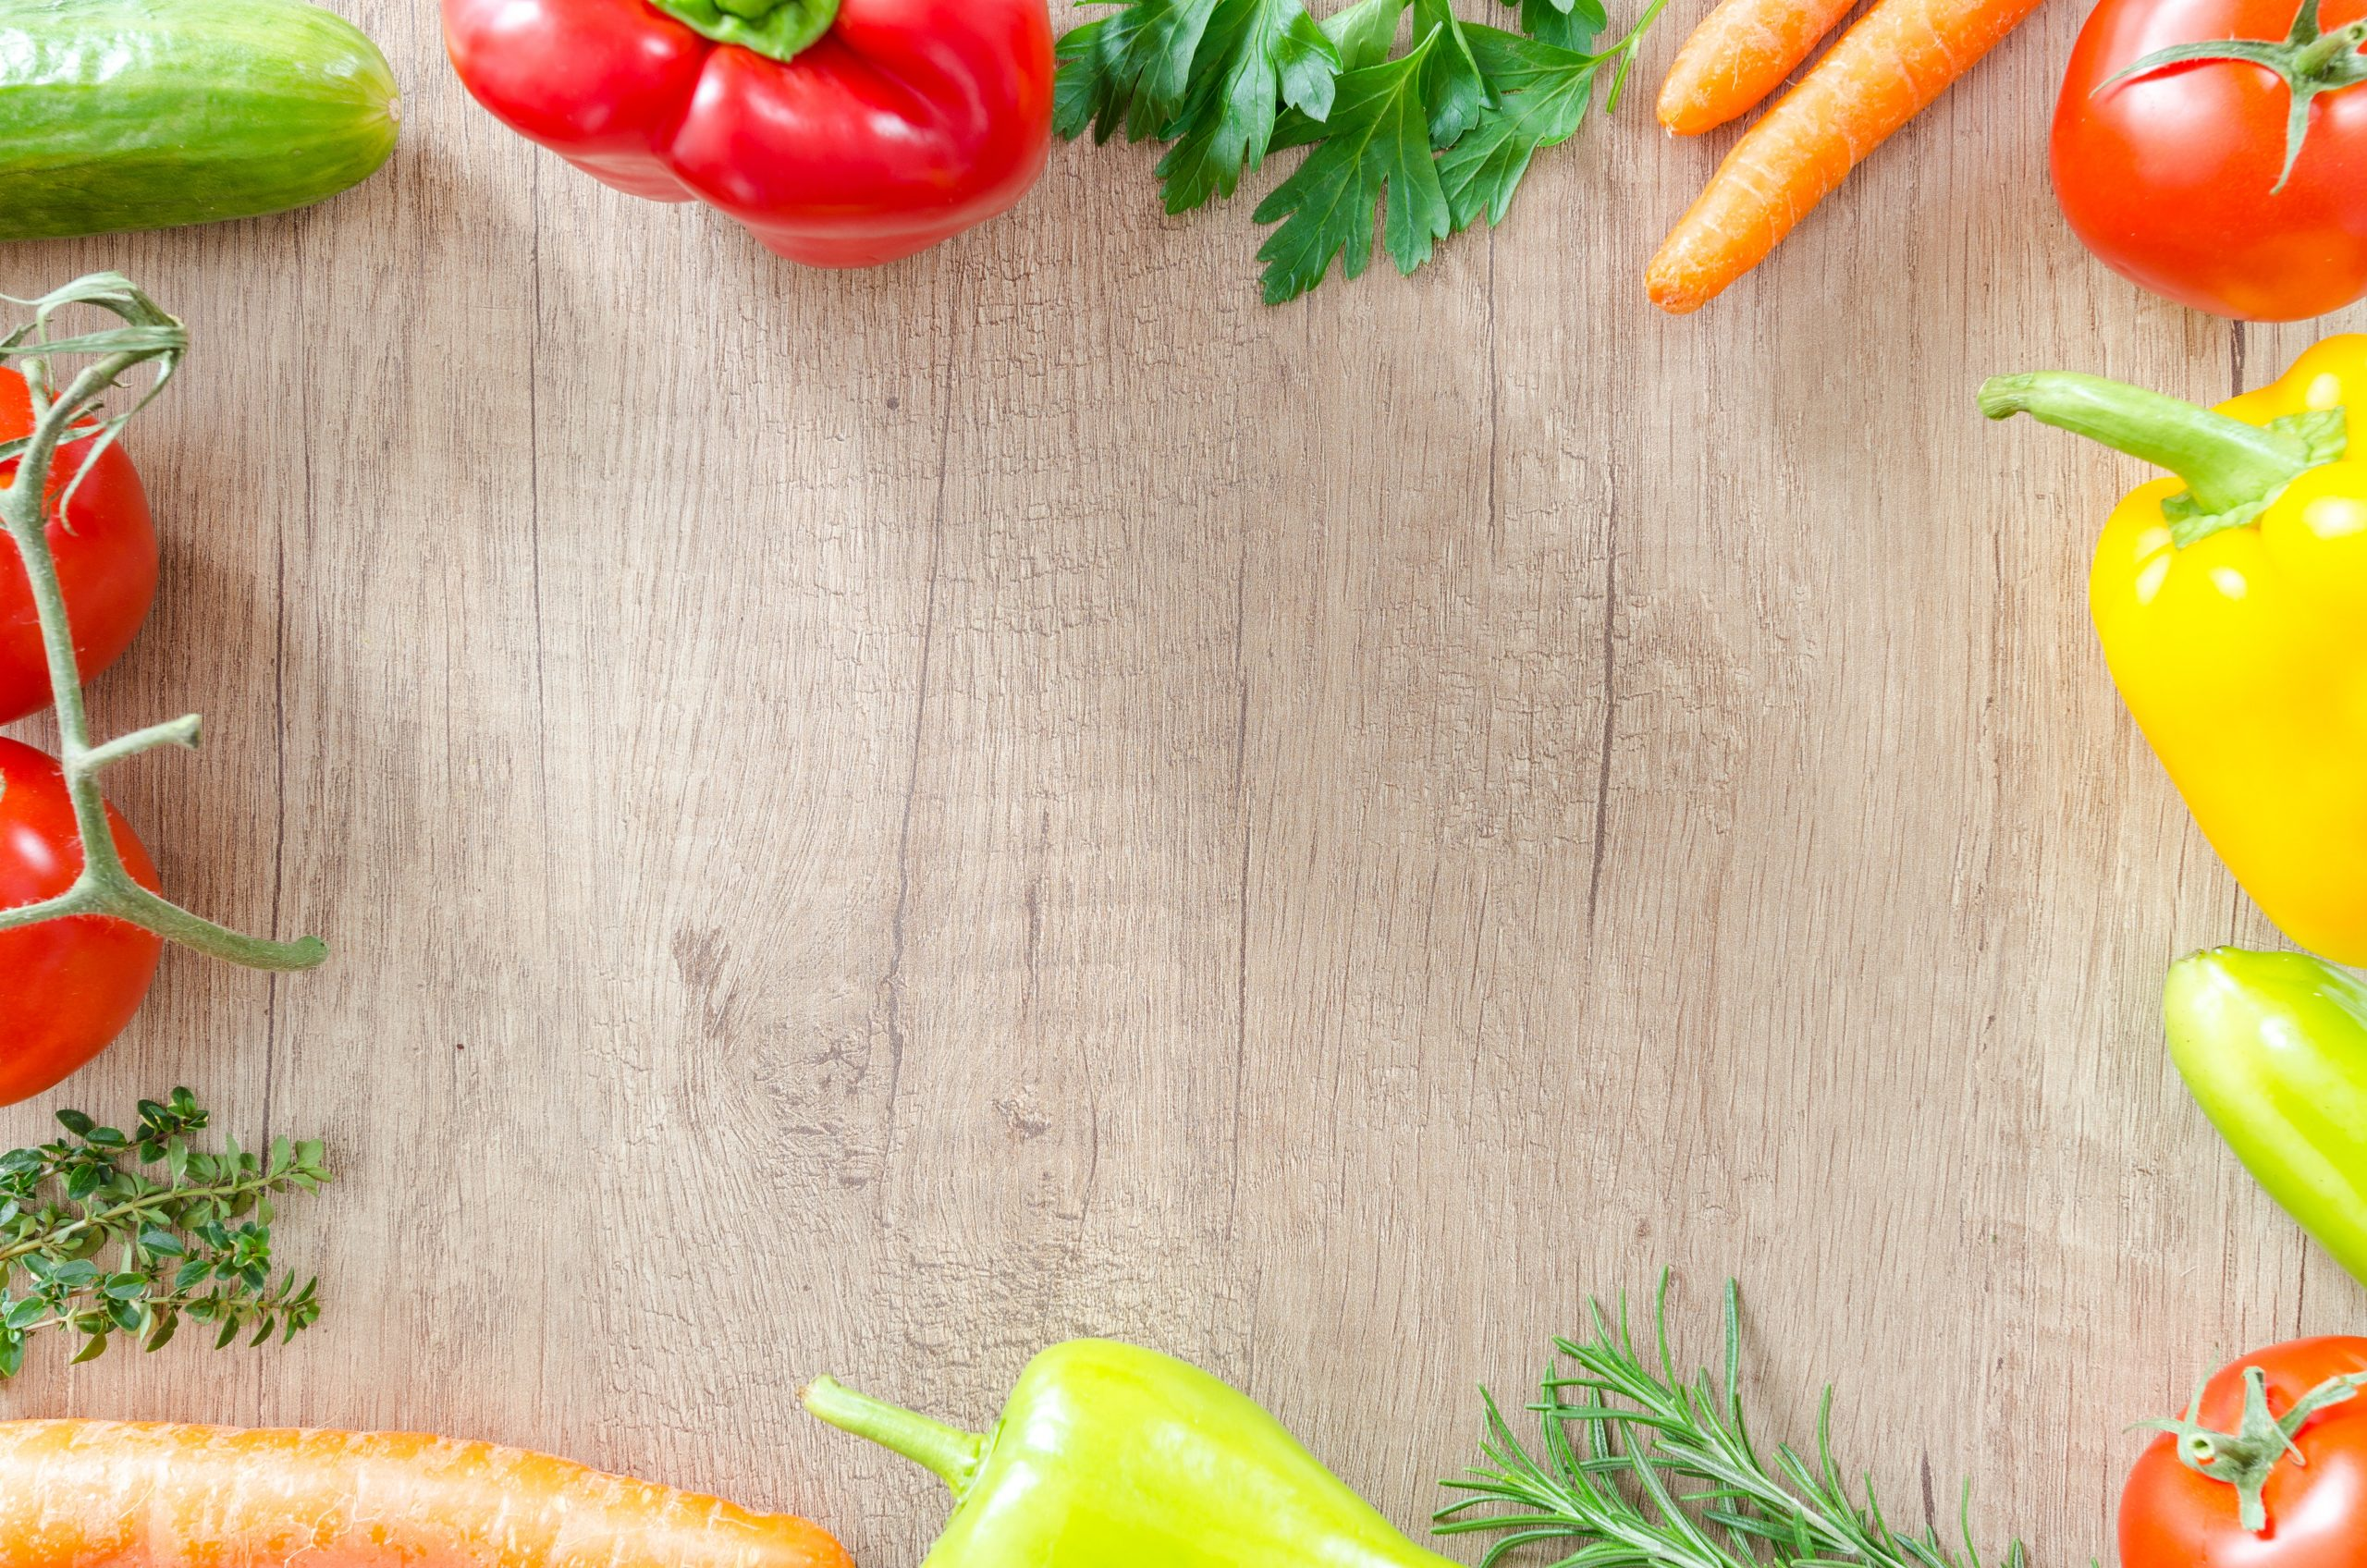 Background of table with fresh produce